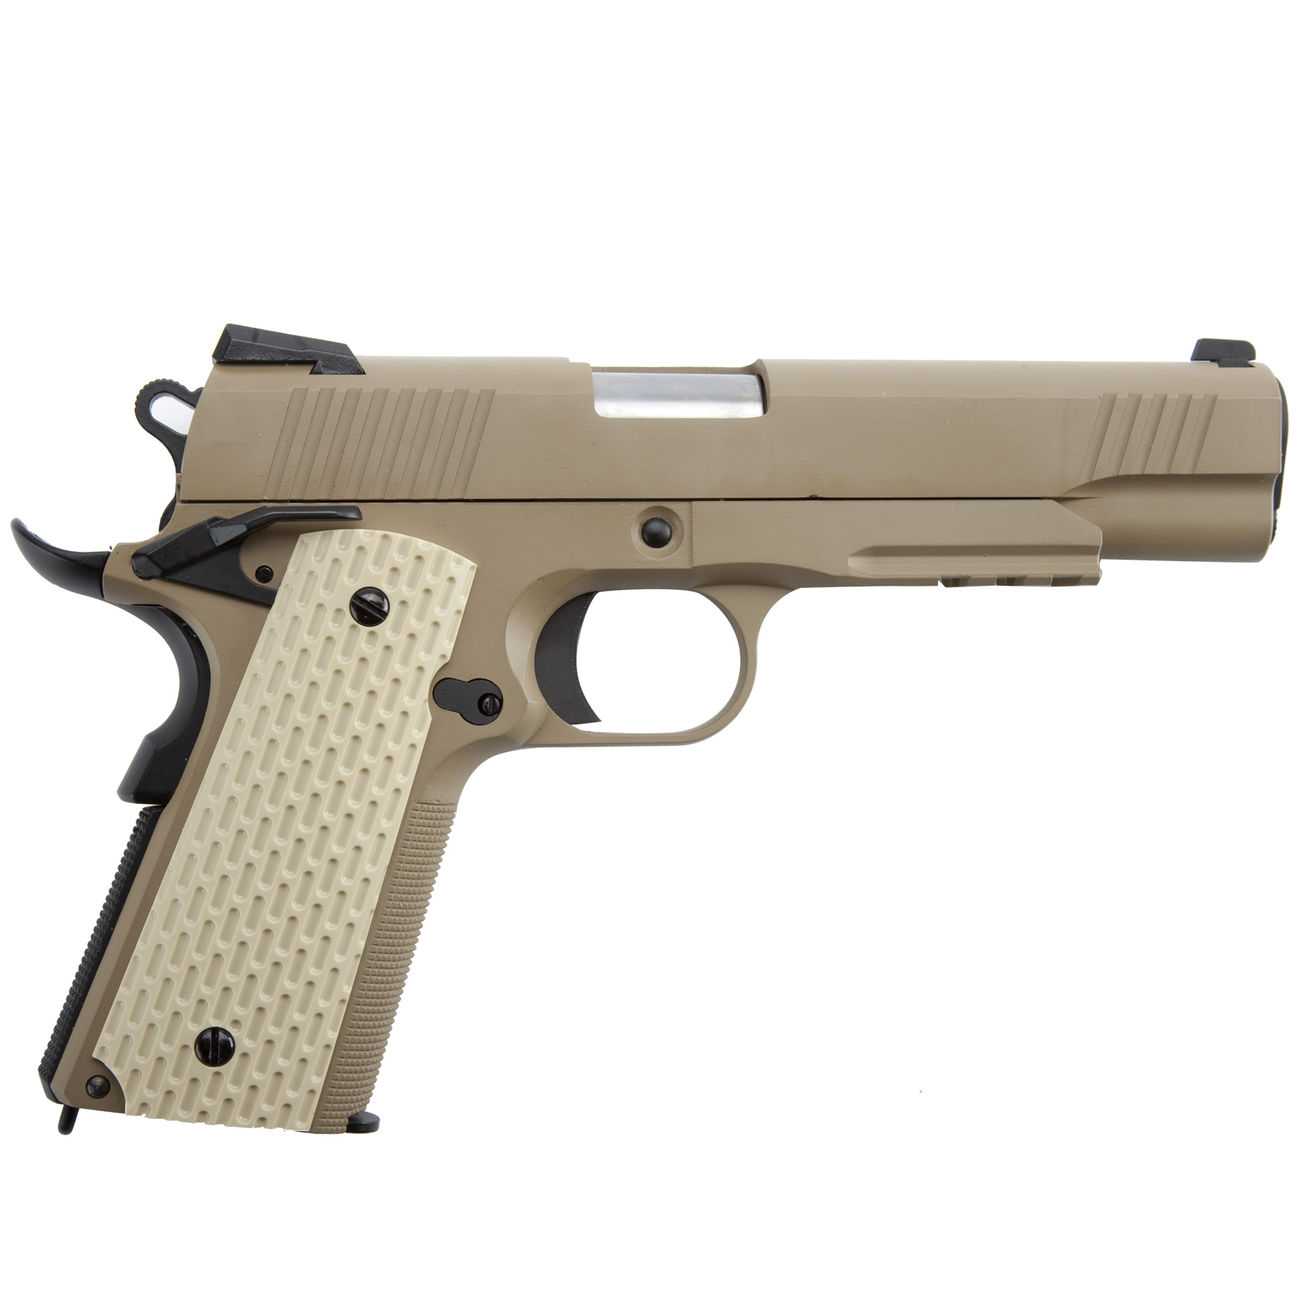 Wei-ETech Kbr-Style Warrior .45 ACP Vollmetall GBB 6mm BB Desert Tan 3